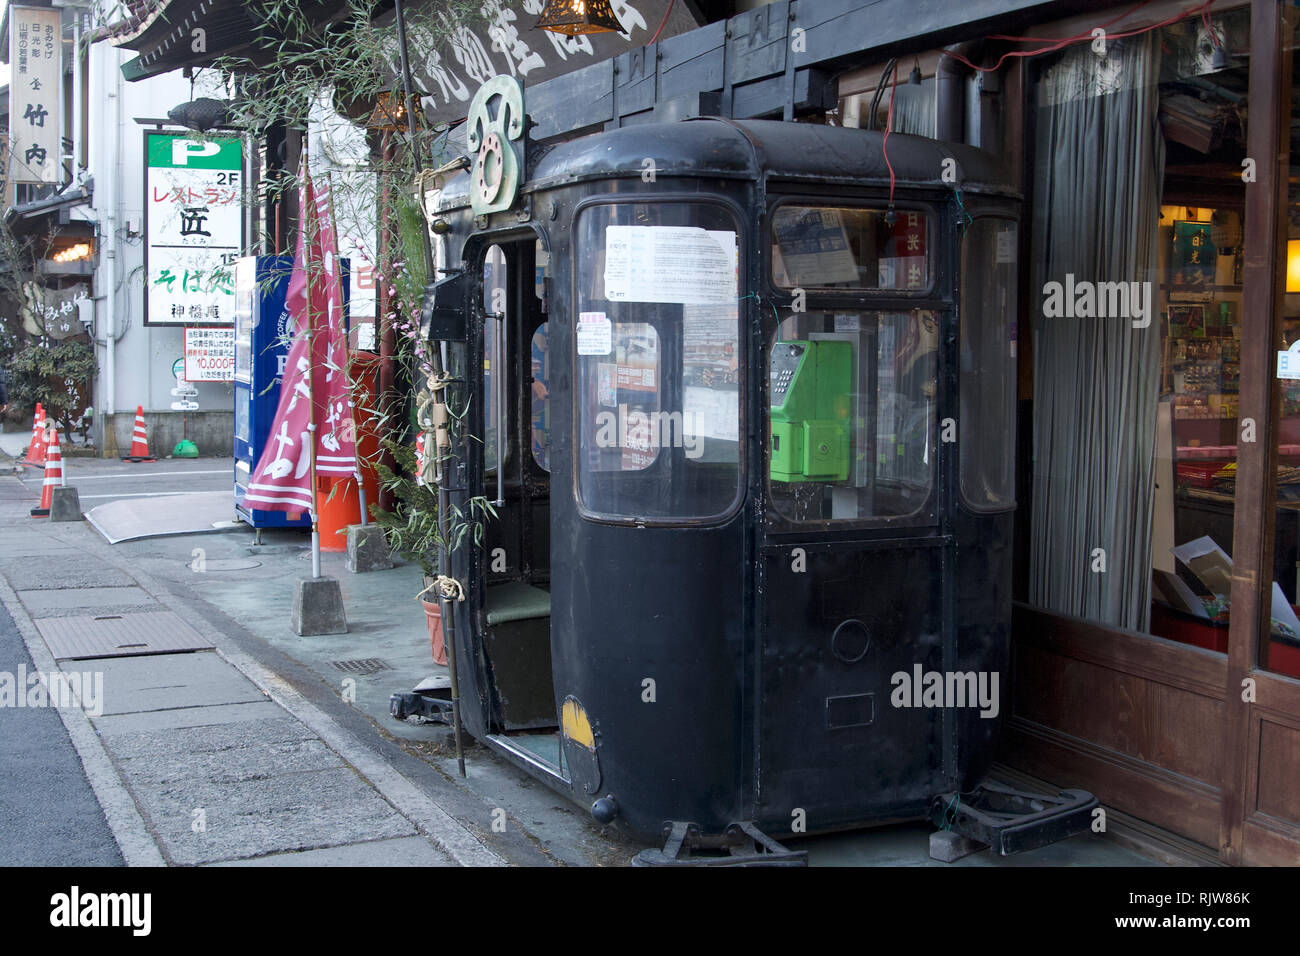 Nikko-Green public telephone in an old black cab on Nihon Romantic Highway - Stock Image